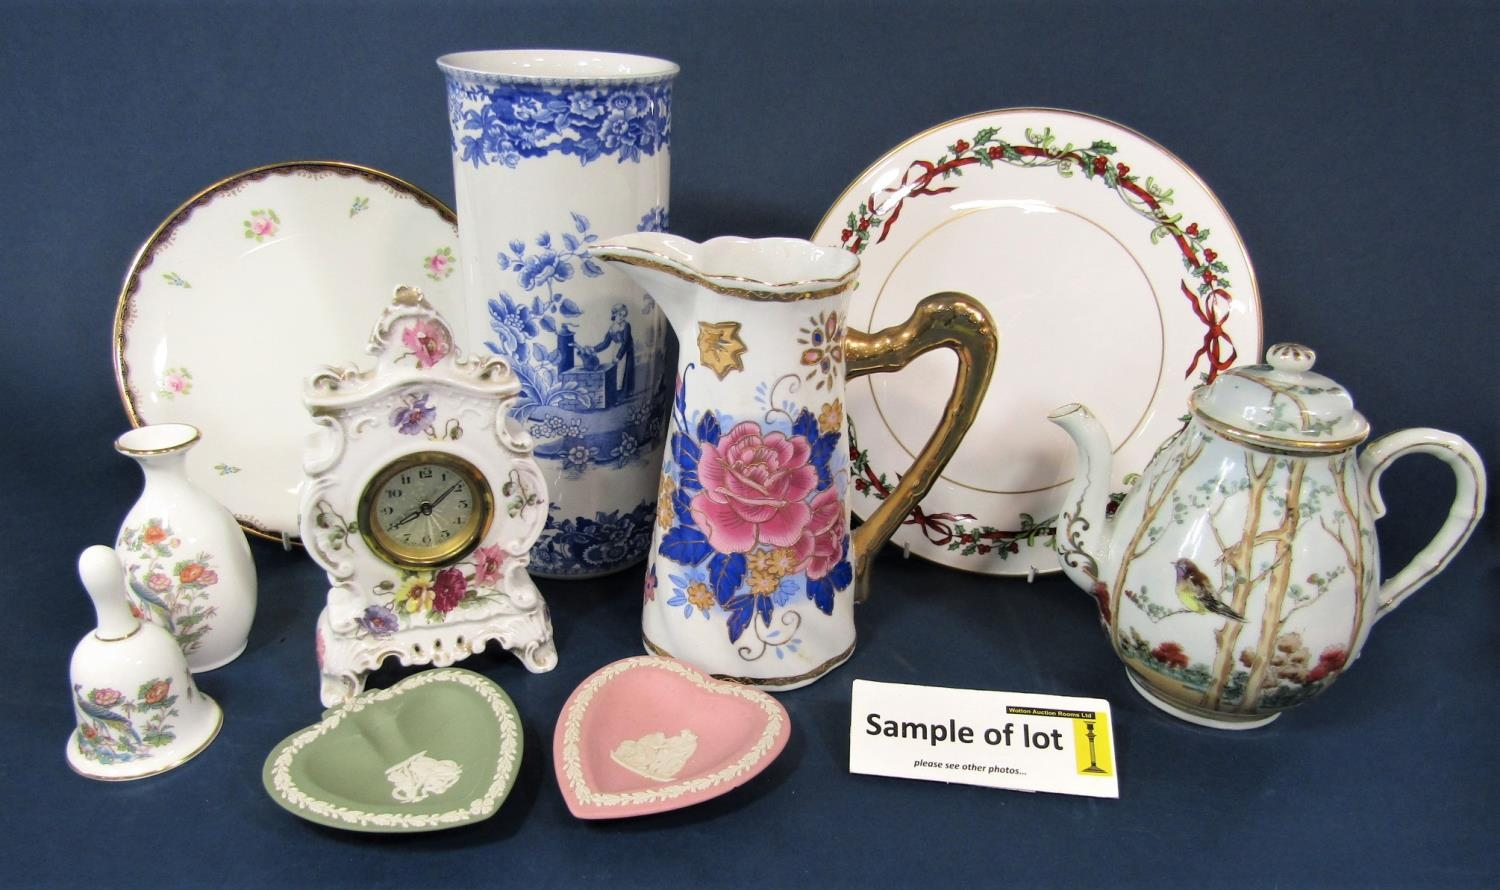 A collection of decorative ceramics including a Spode blue room collection girl at well pattern blue